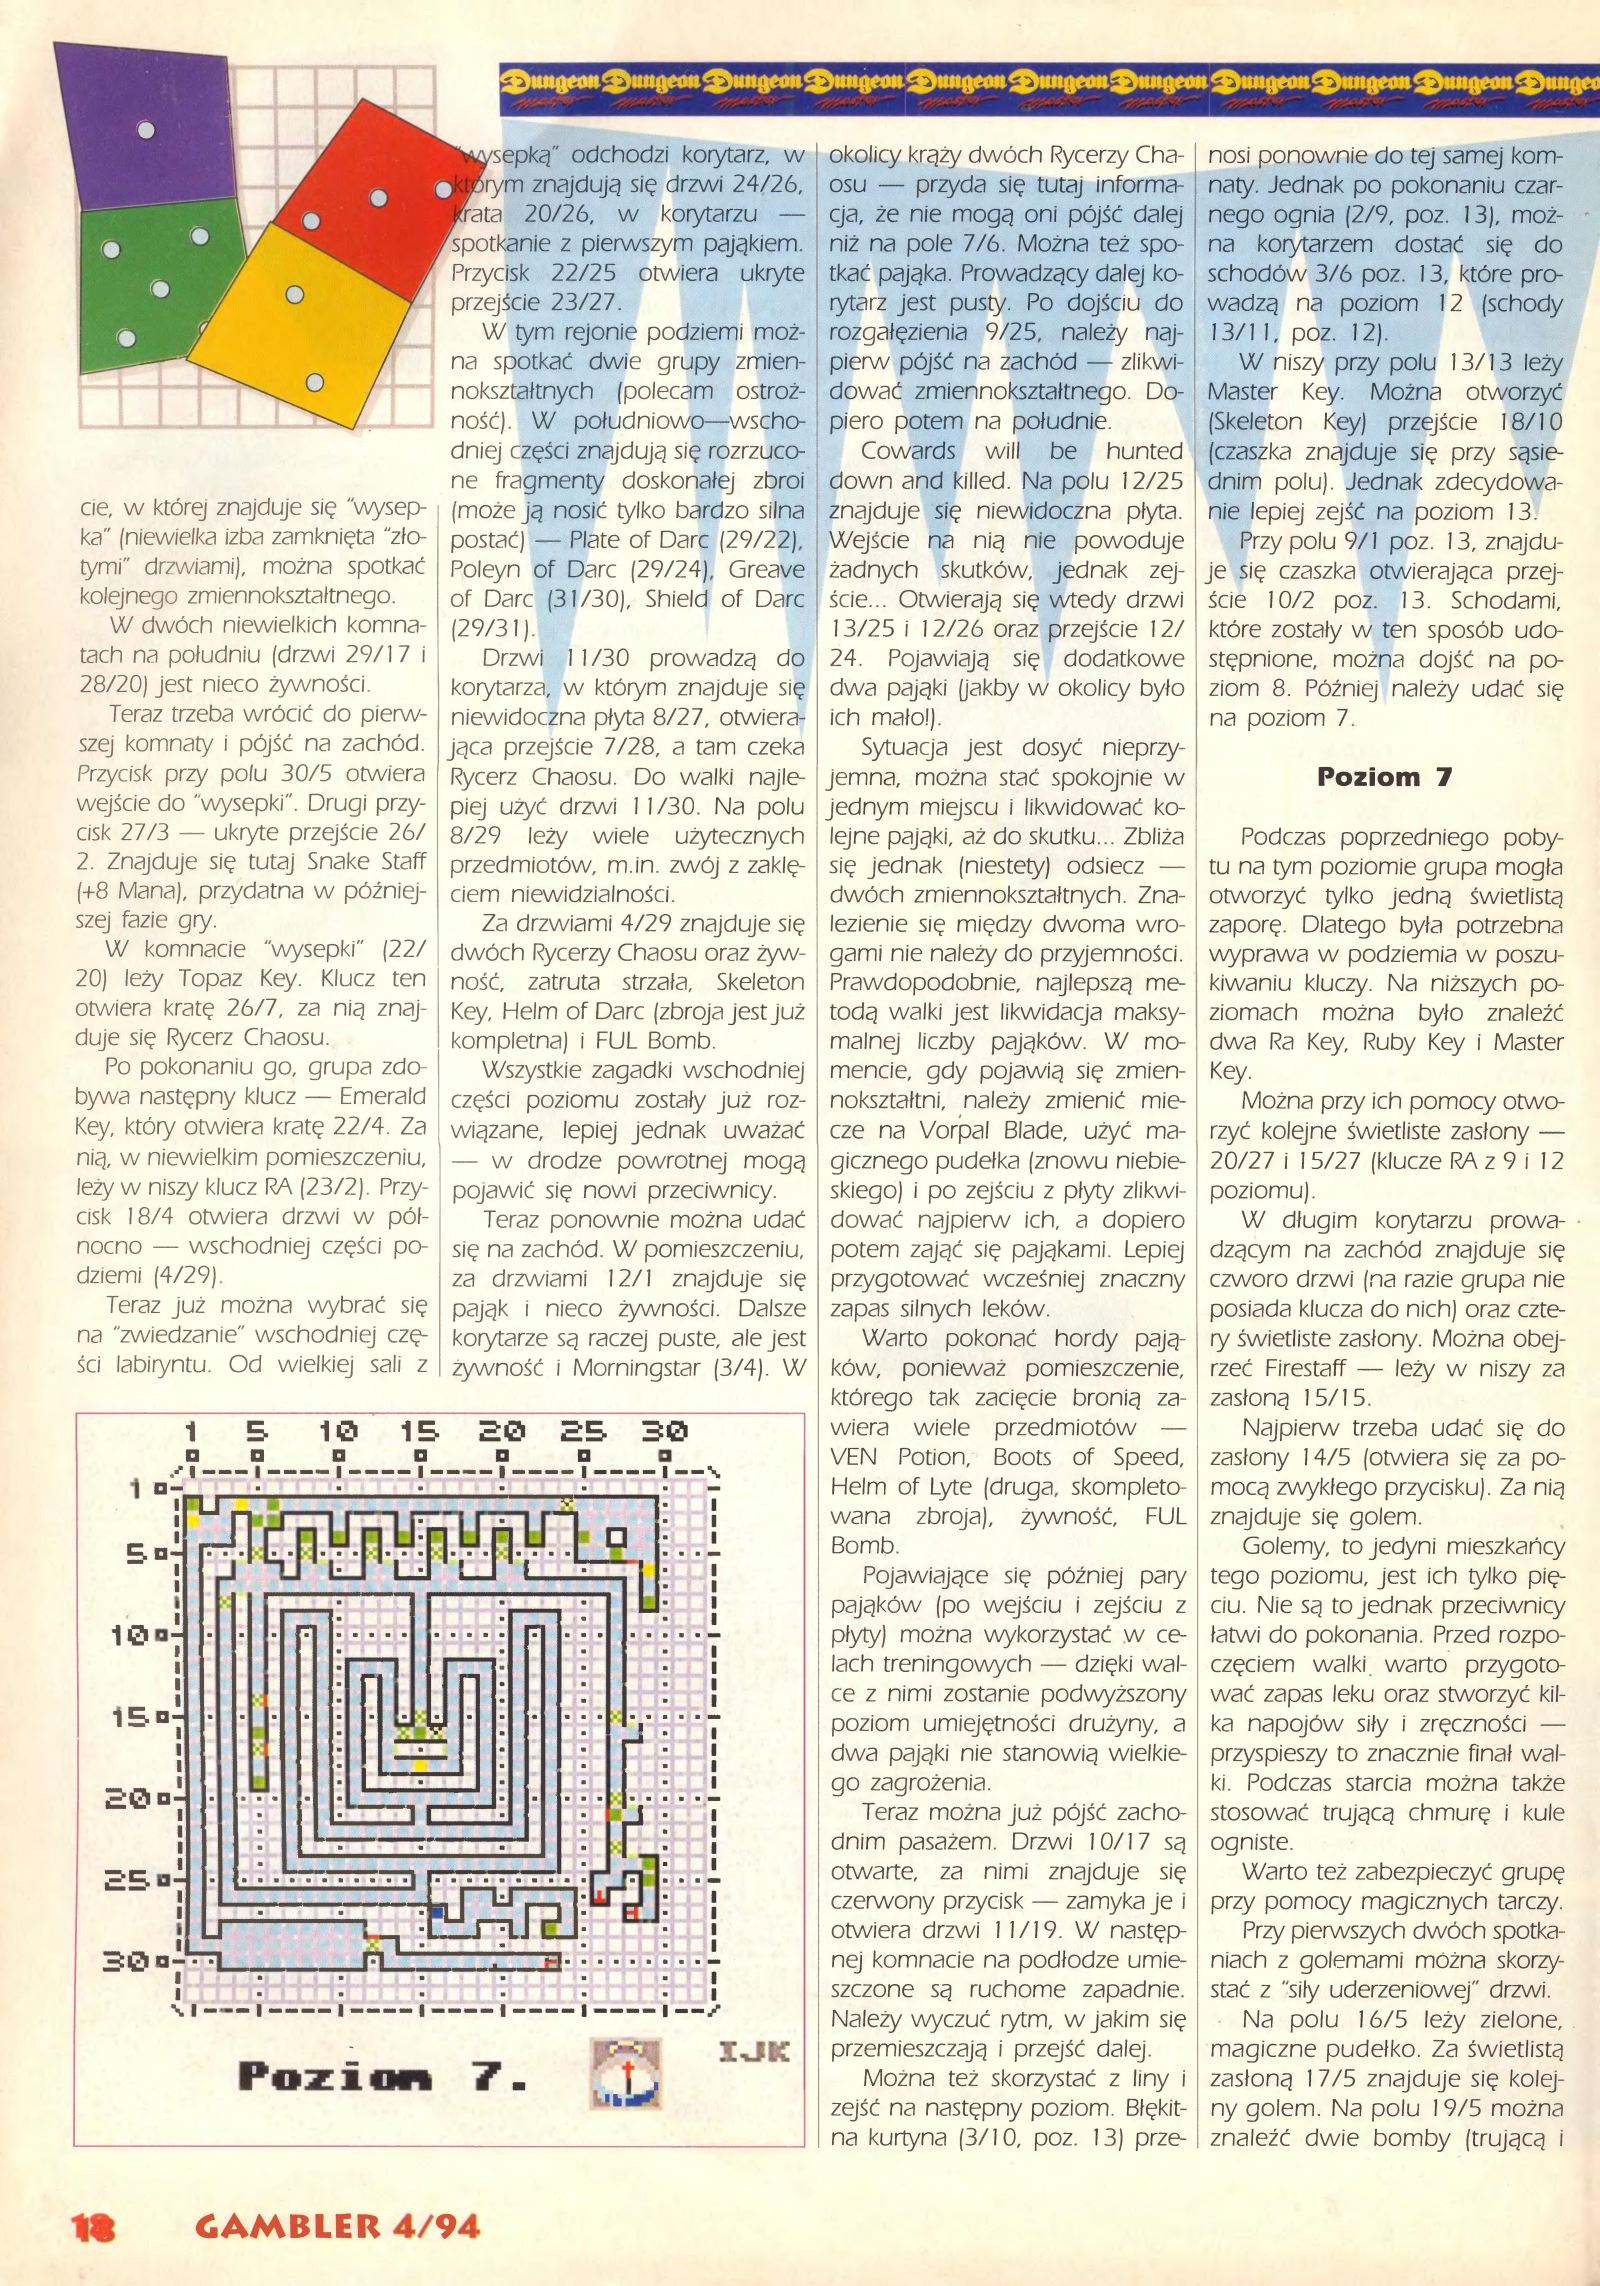 Dungeon Master Guide published in Polish magazine 'Gambler', April 1994, Page 18